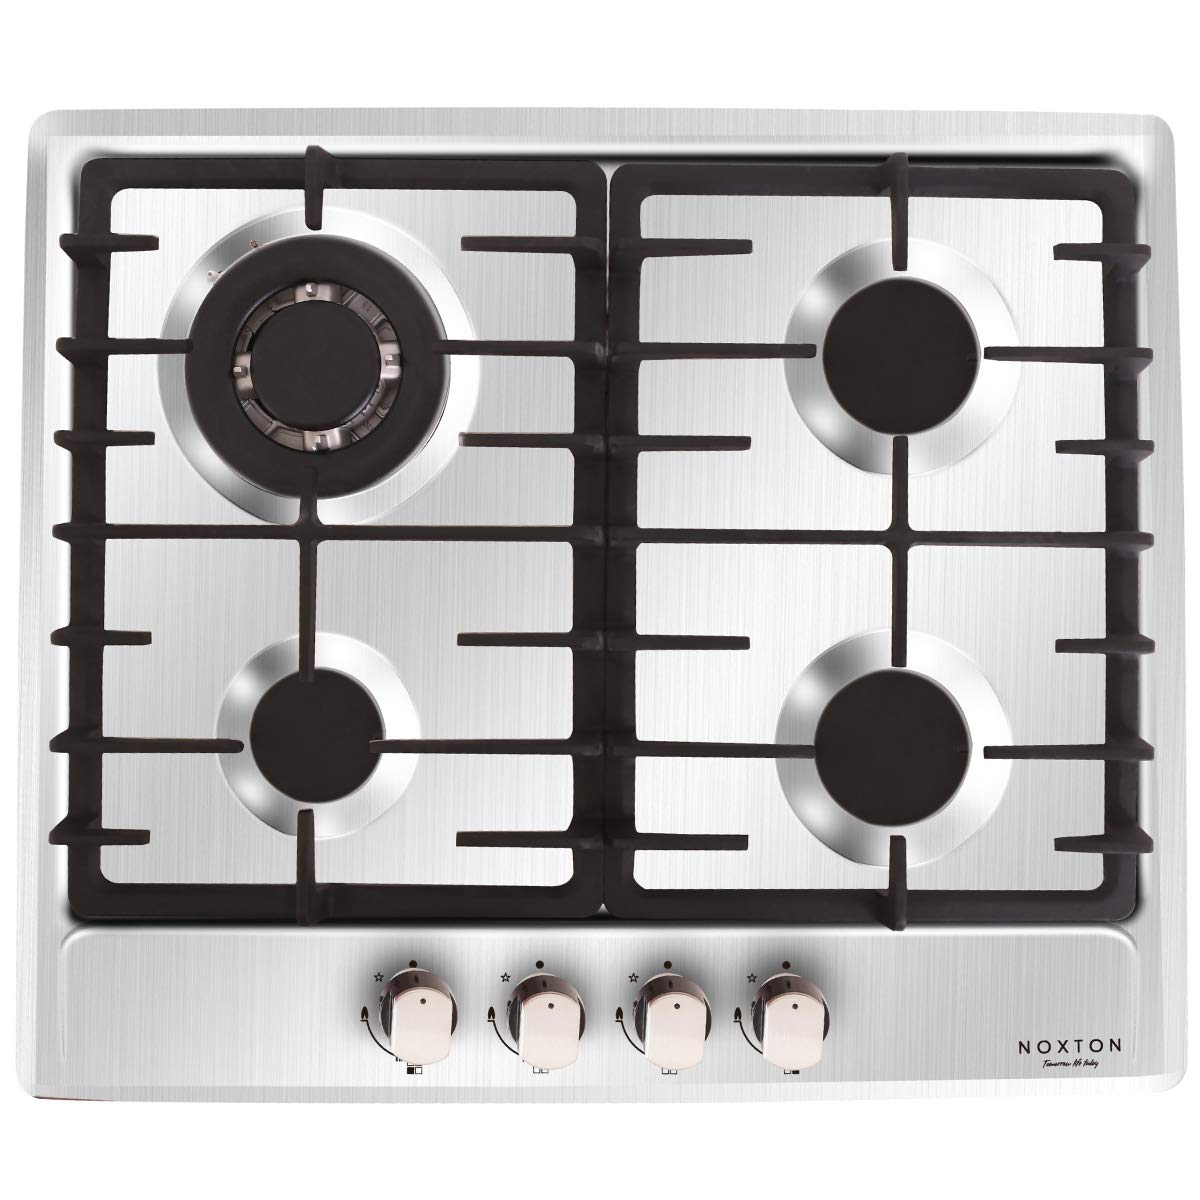 NOXTON Built-in 60cm Gas Cooking Hob 4 Burner in Stainless Steel FFD for LPG & Natural Gas PF640STX-1